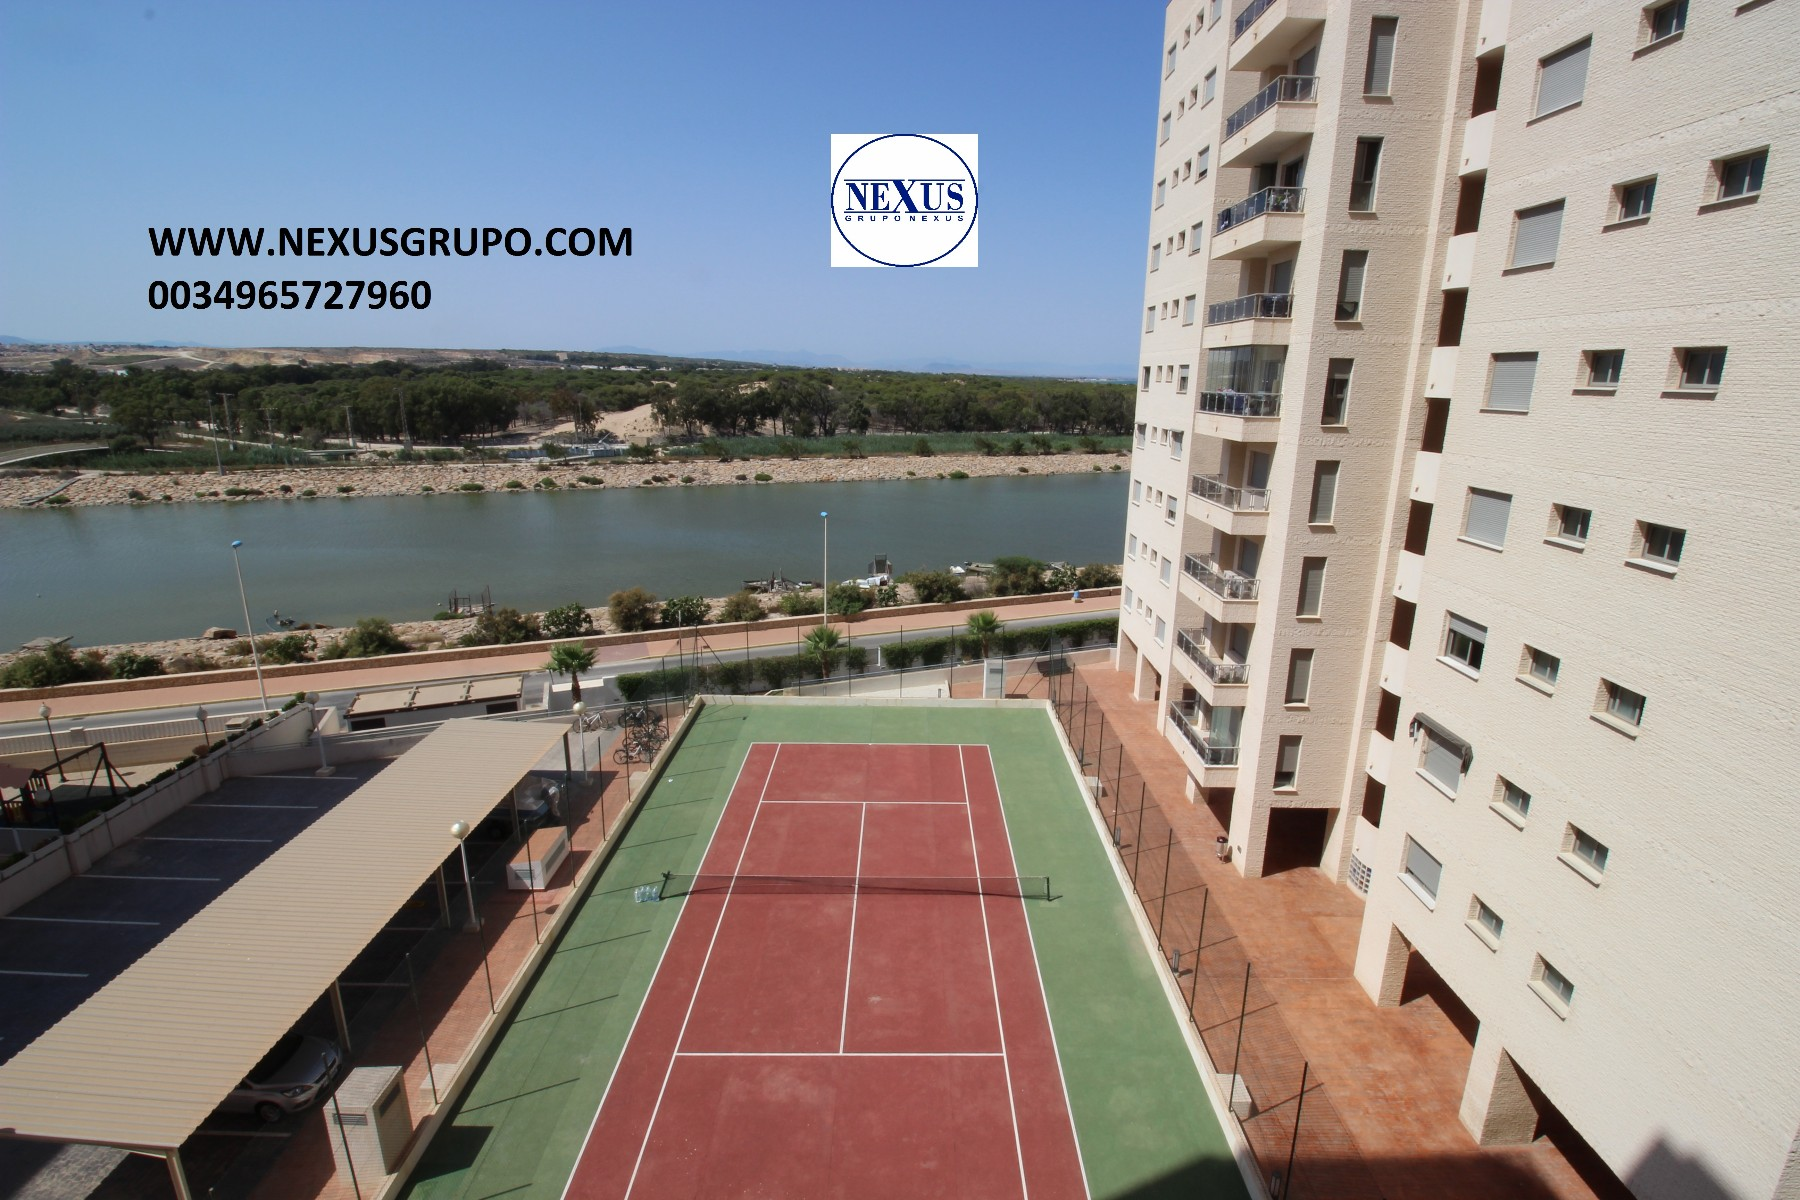 Inmobiliaria Grupo Nexus Rent apartment for the whole year, in front of Puerto Deportivo. in Nexus Grupo